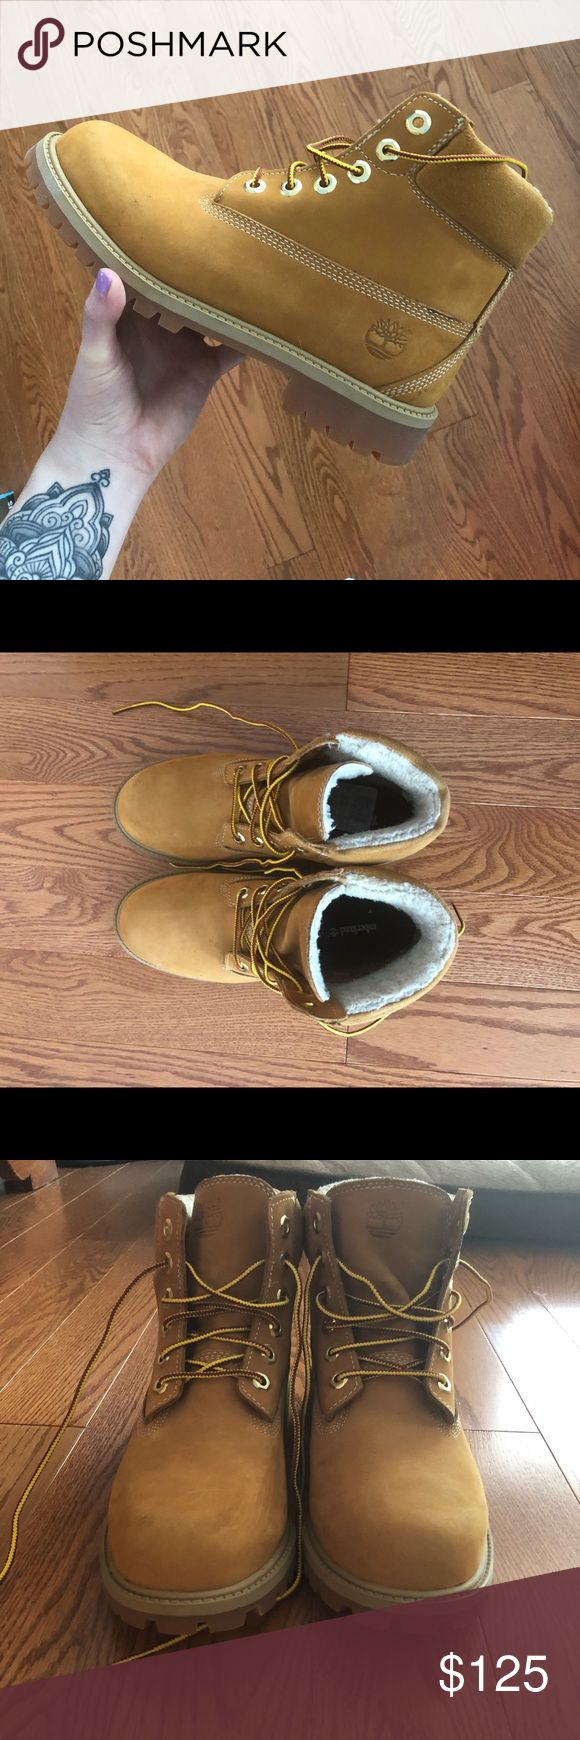 """Timberland Boots Nubuck wheat Timberland waterproof boots only worn TWICE. 6"""" style   These are size women's 6.5 but I generally wear a 7 and they fit me well. Timberland Shoes Winter & Rain Boots"""